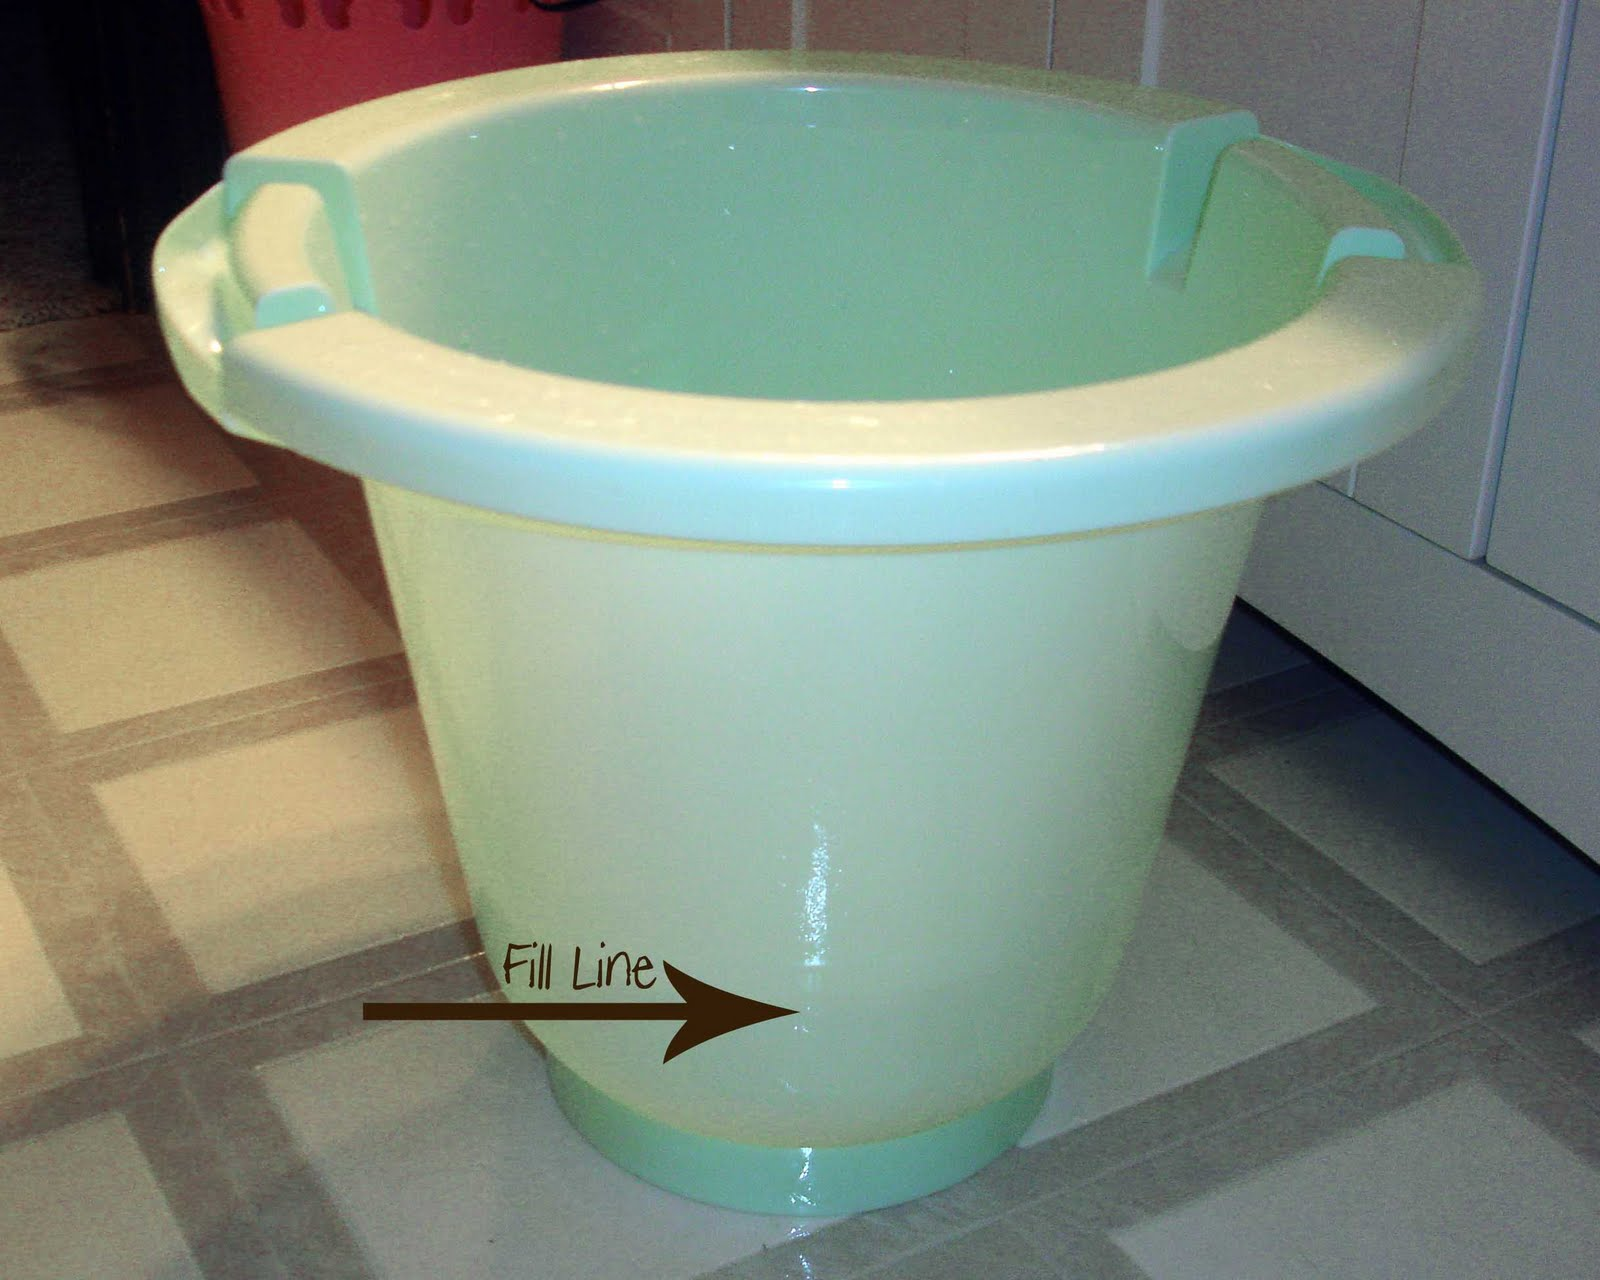 Spa Baby Eco Tub Review - The Eco-Friendly Family